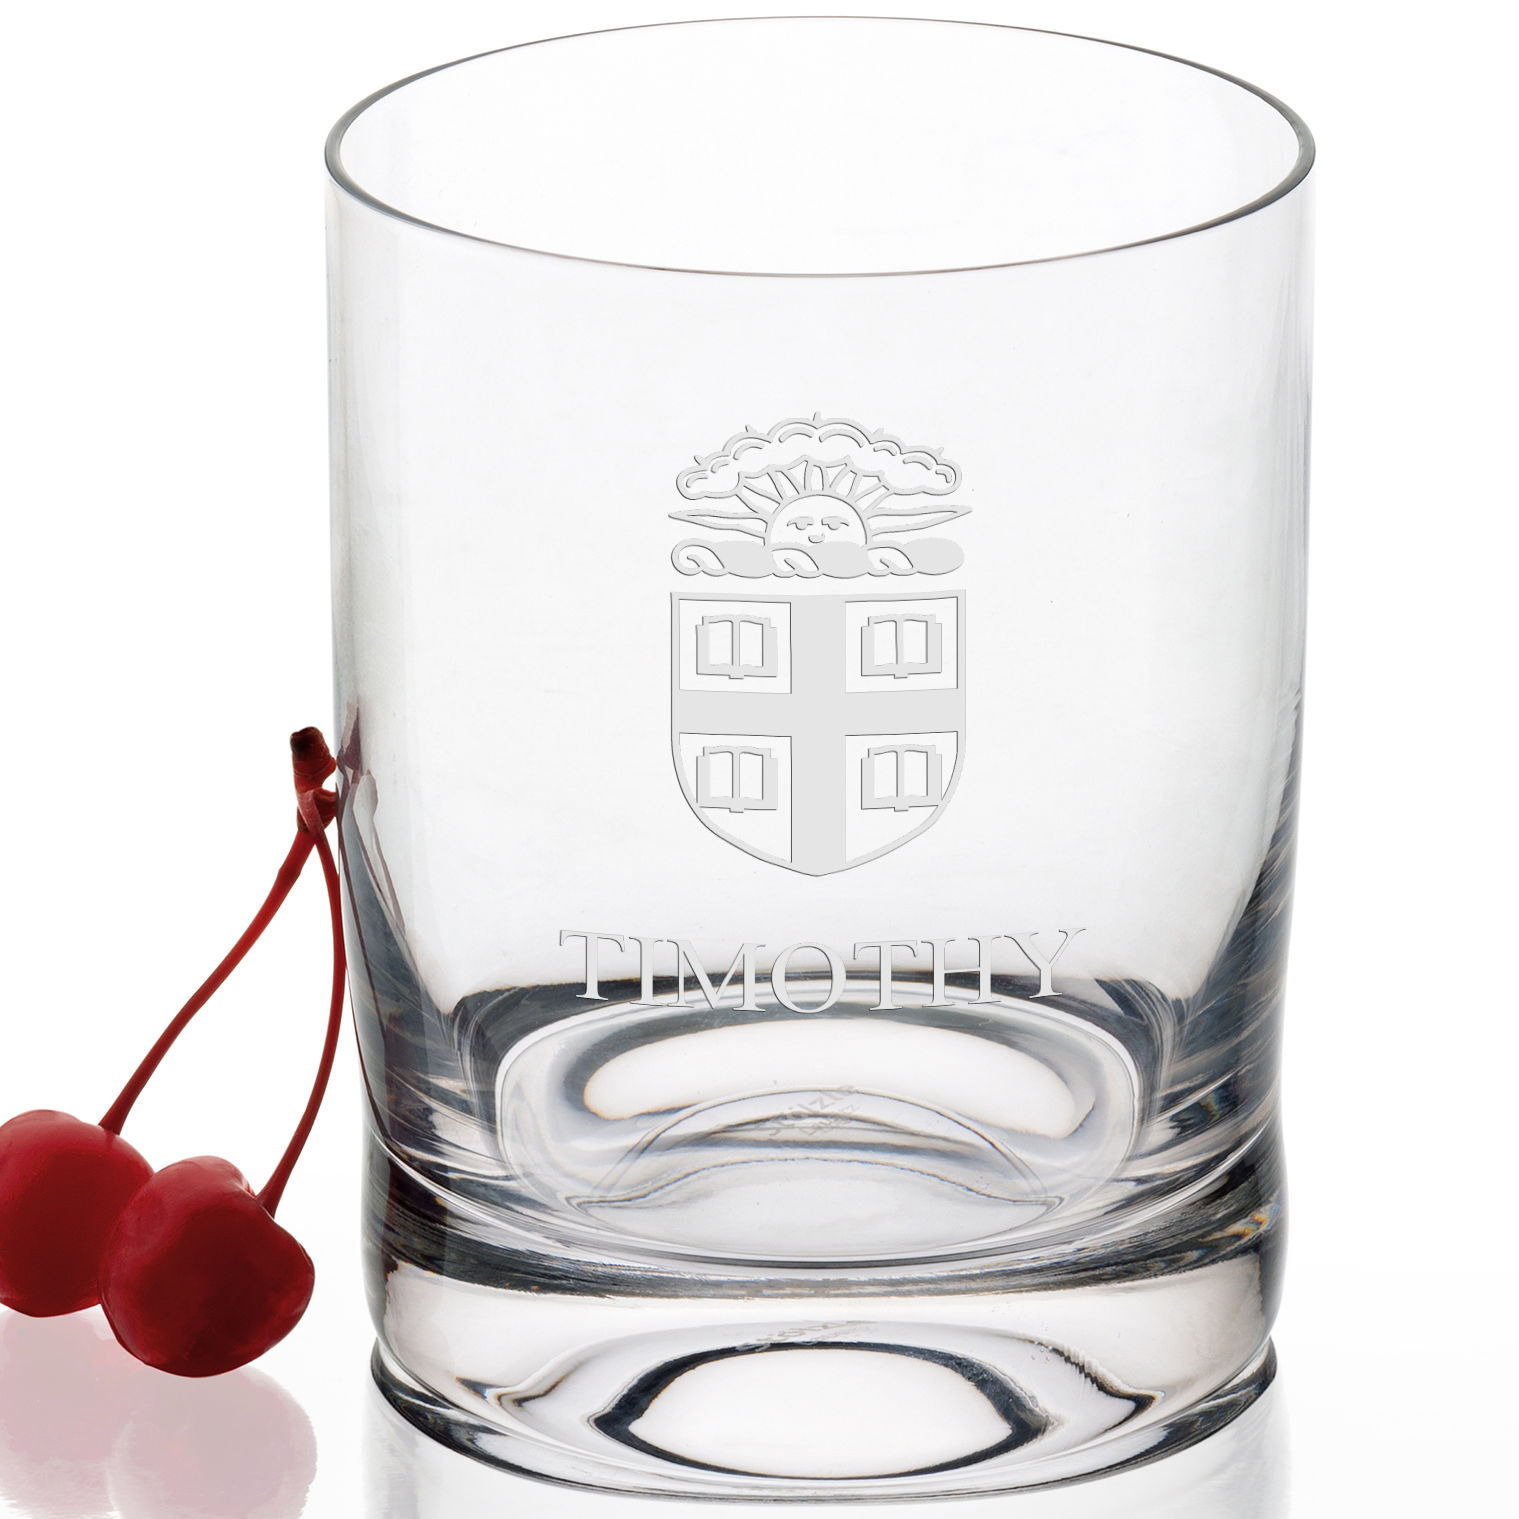 Brown University Tumbler Glasses - Set of 2 - Image 2